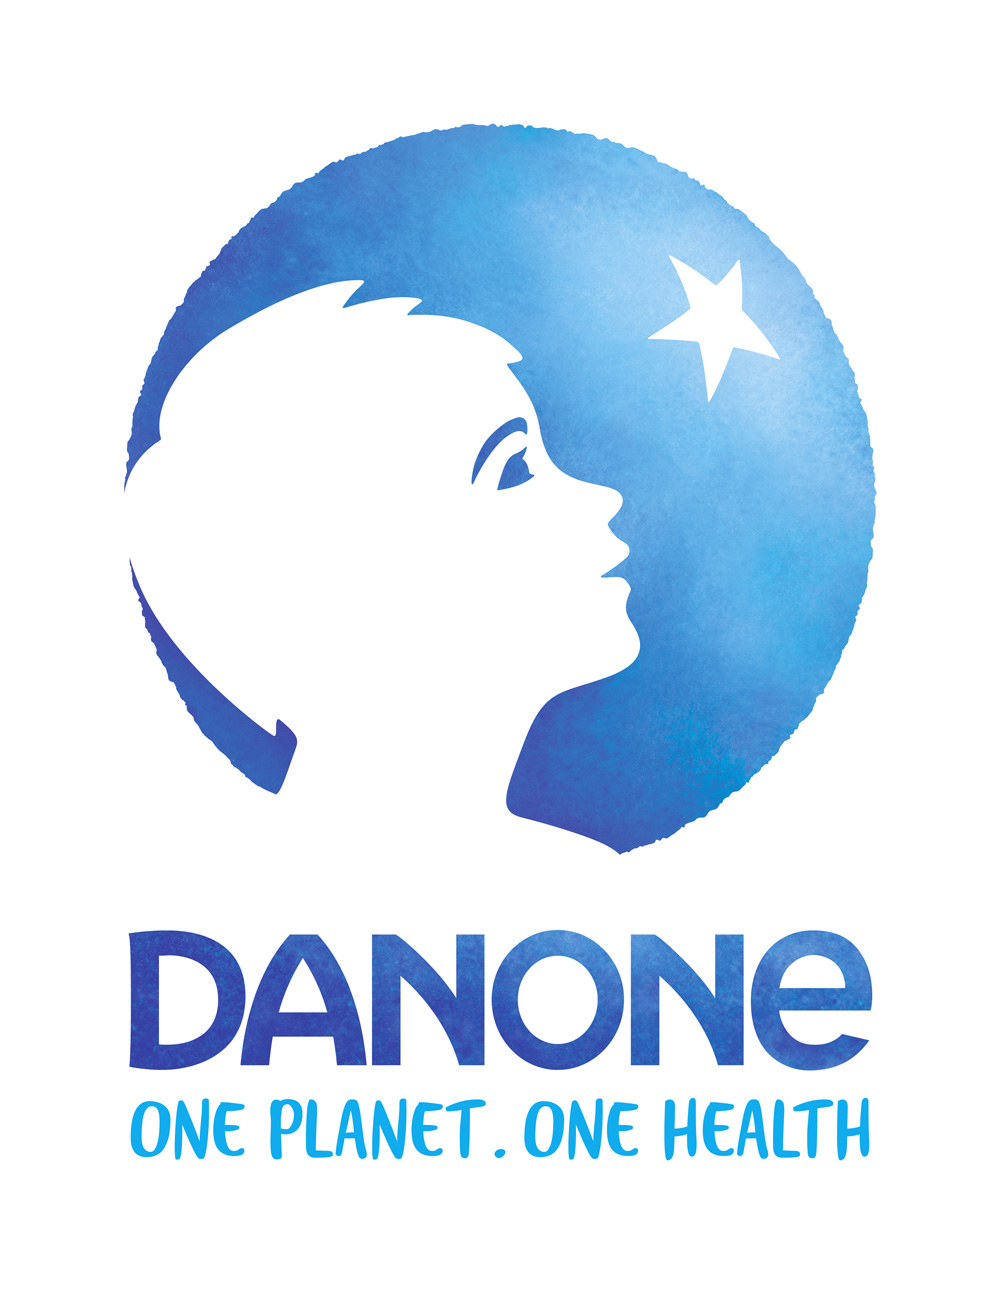 New Logo for Danone by Conran Design Group